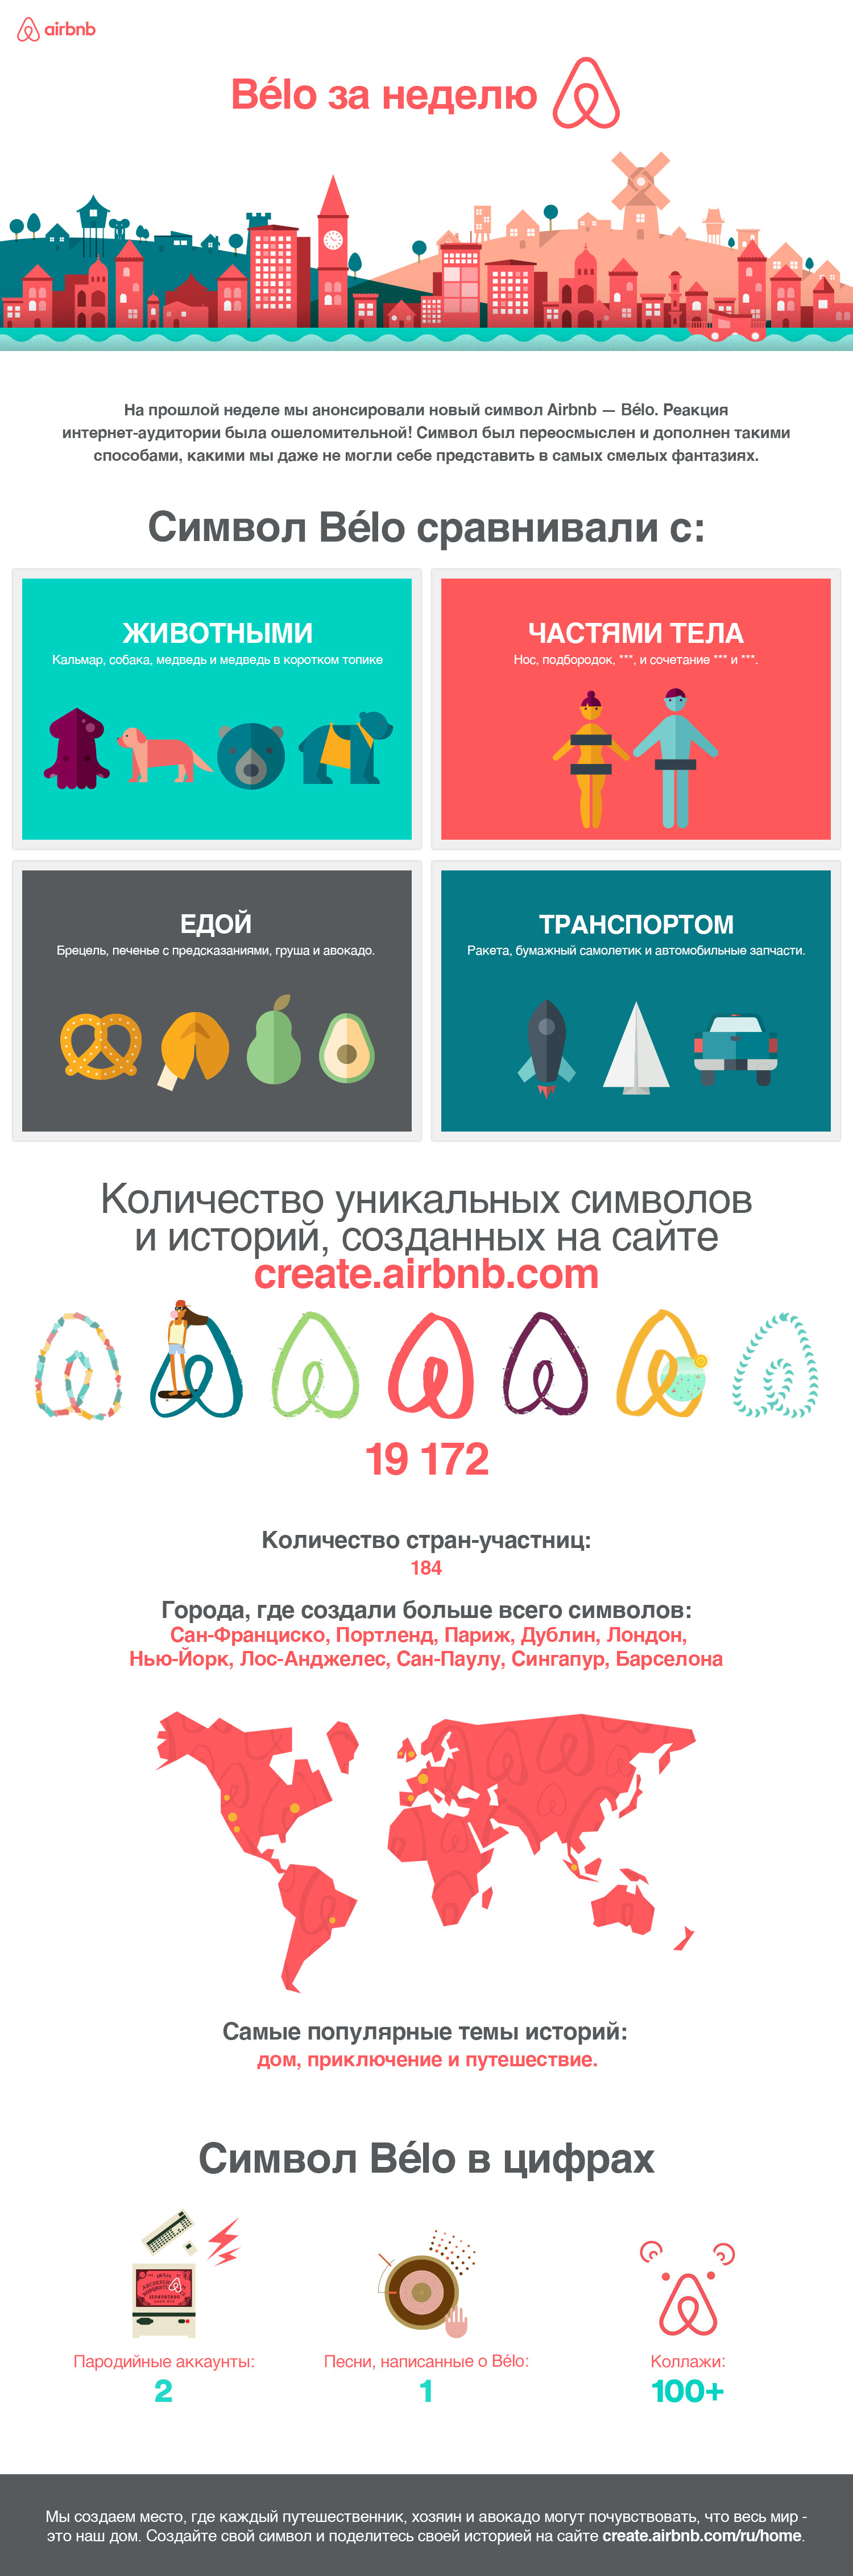 Airbnb_Belo_infographic_Russian (1)